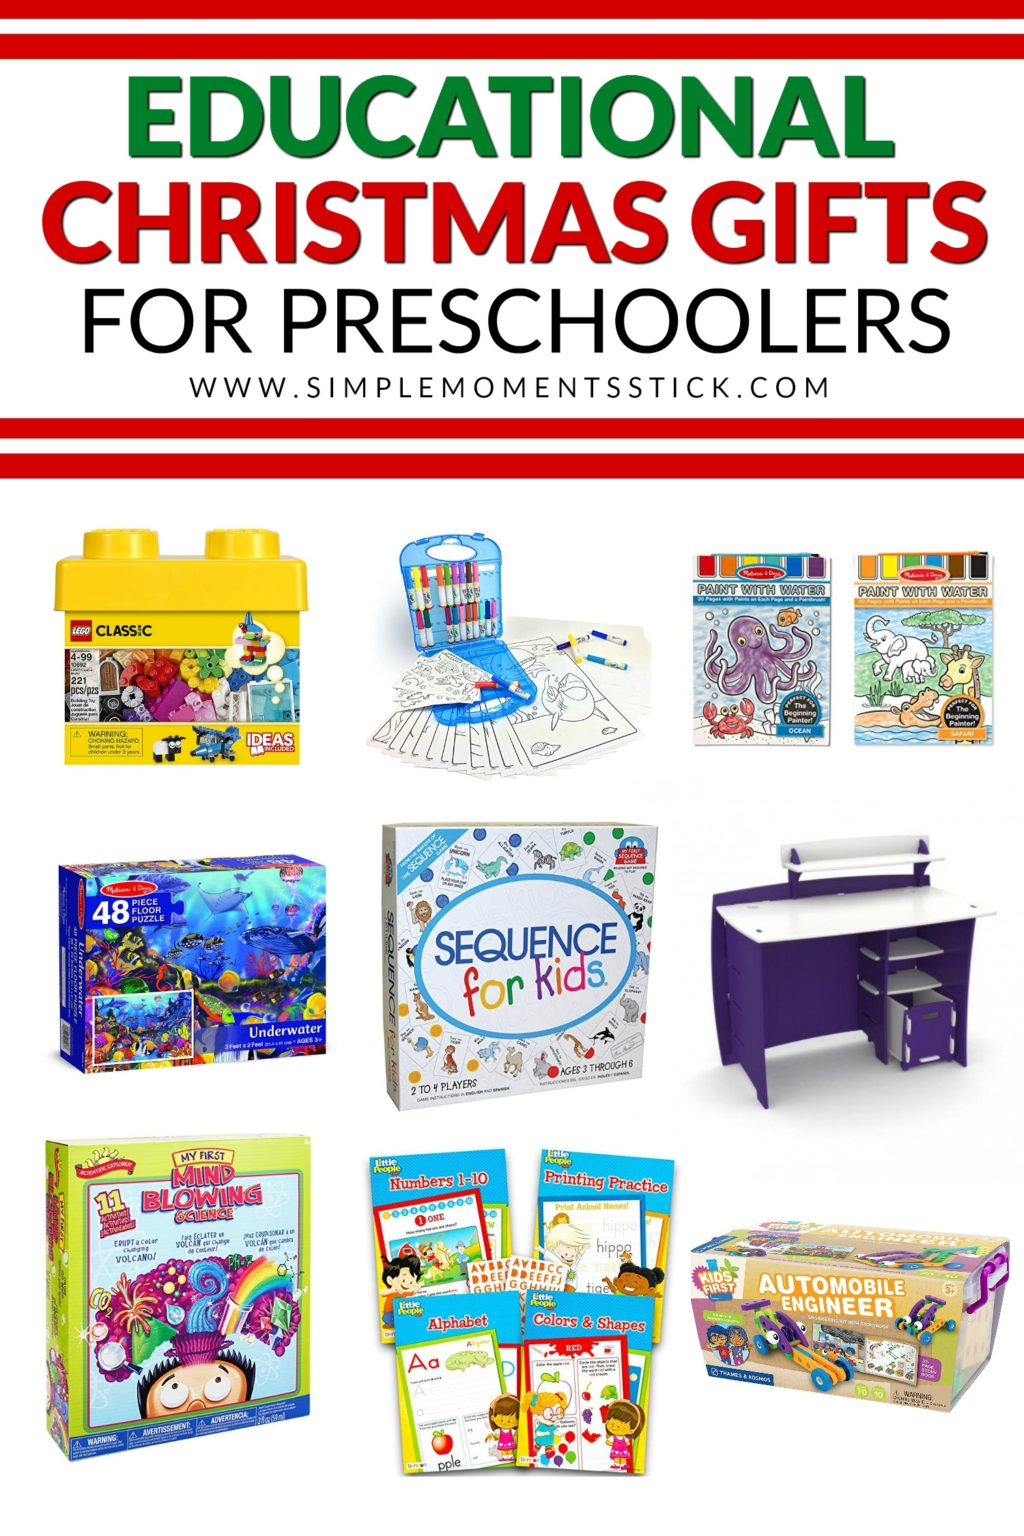 The very best educational christmas gifts for preschoolers! You're going to want to check out this post if you're shopping for a four or five year old!